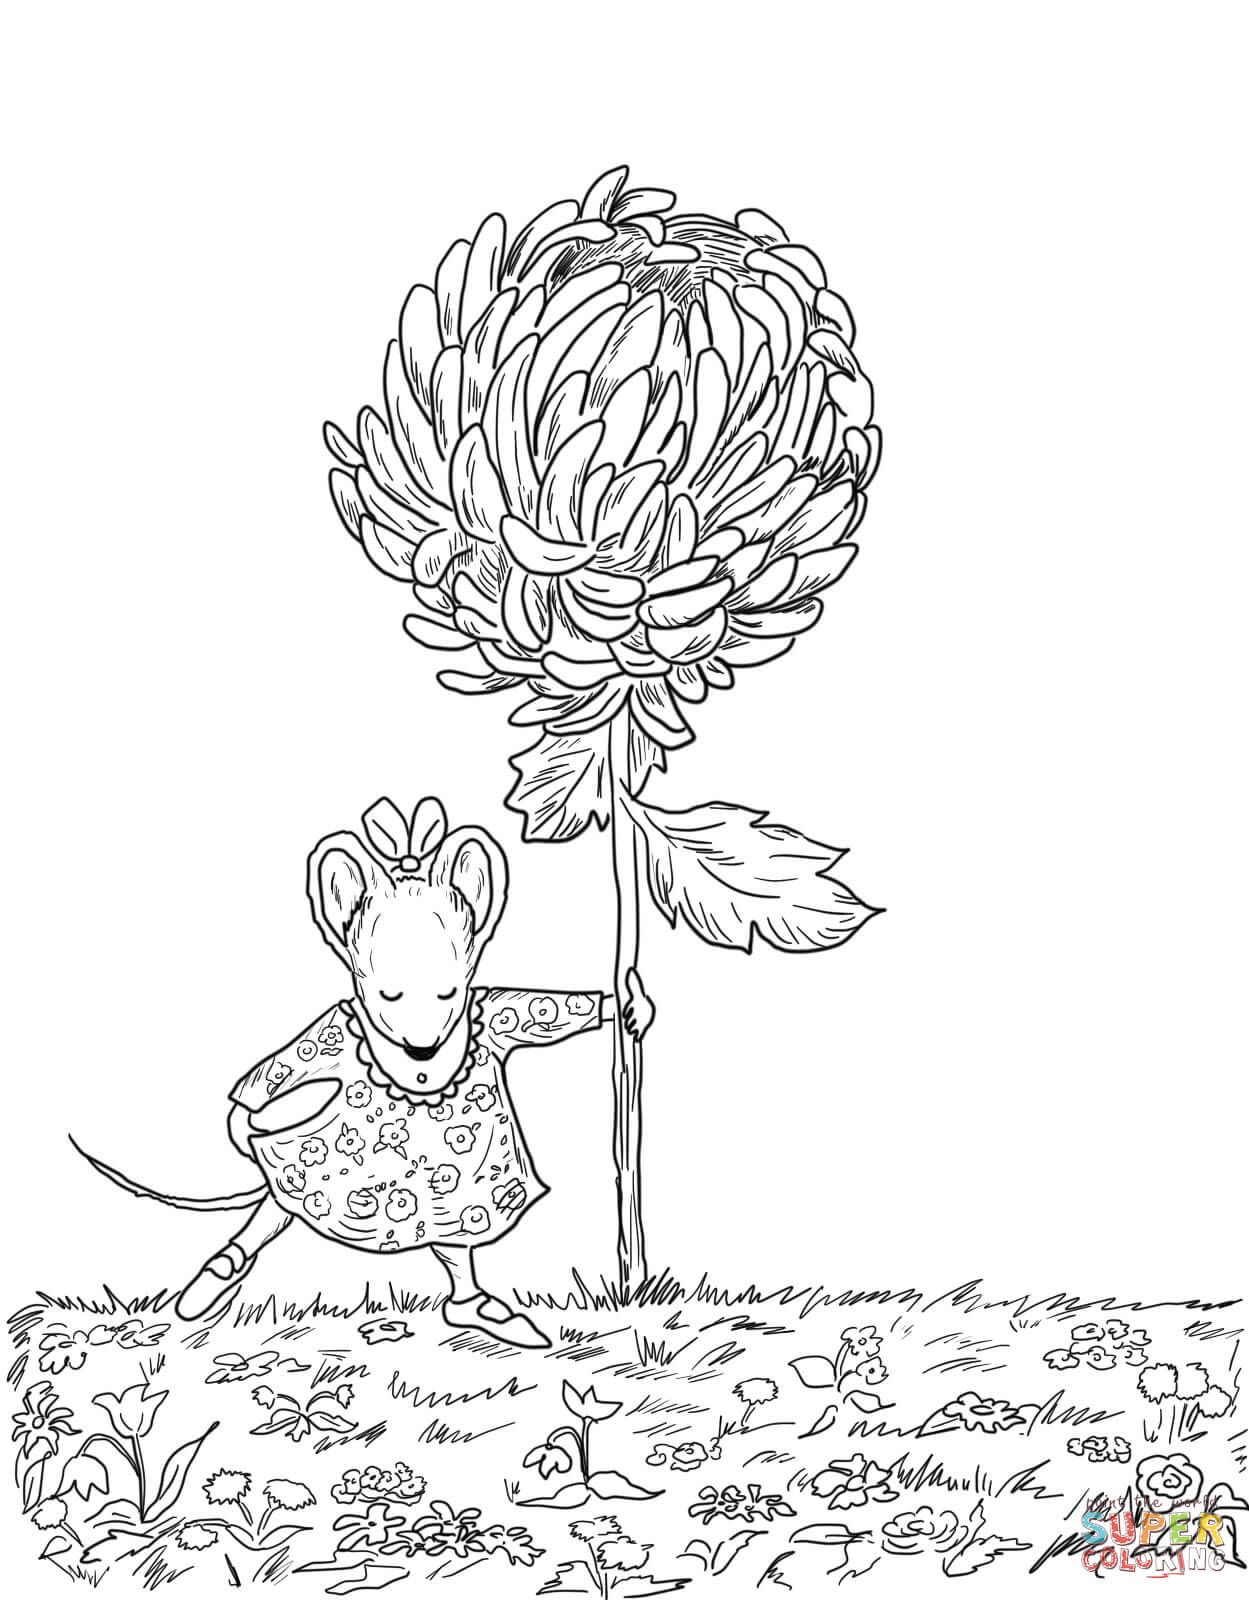 image result for chrysanthemum book - Chrysanthemum Book Coloring Pages